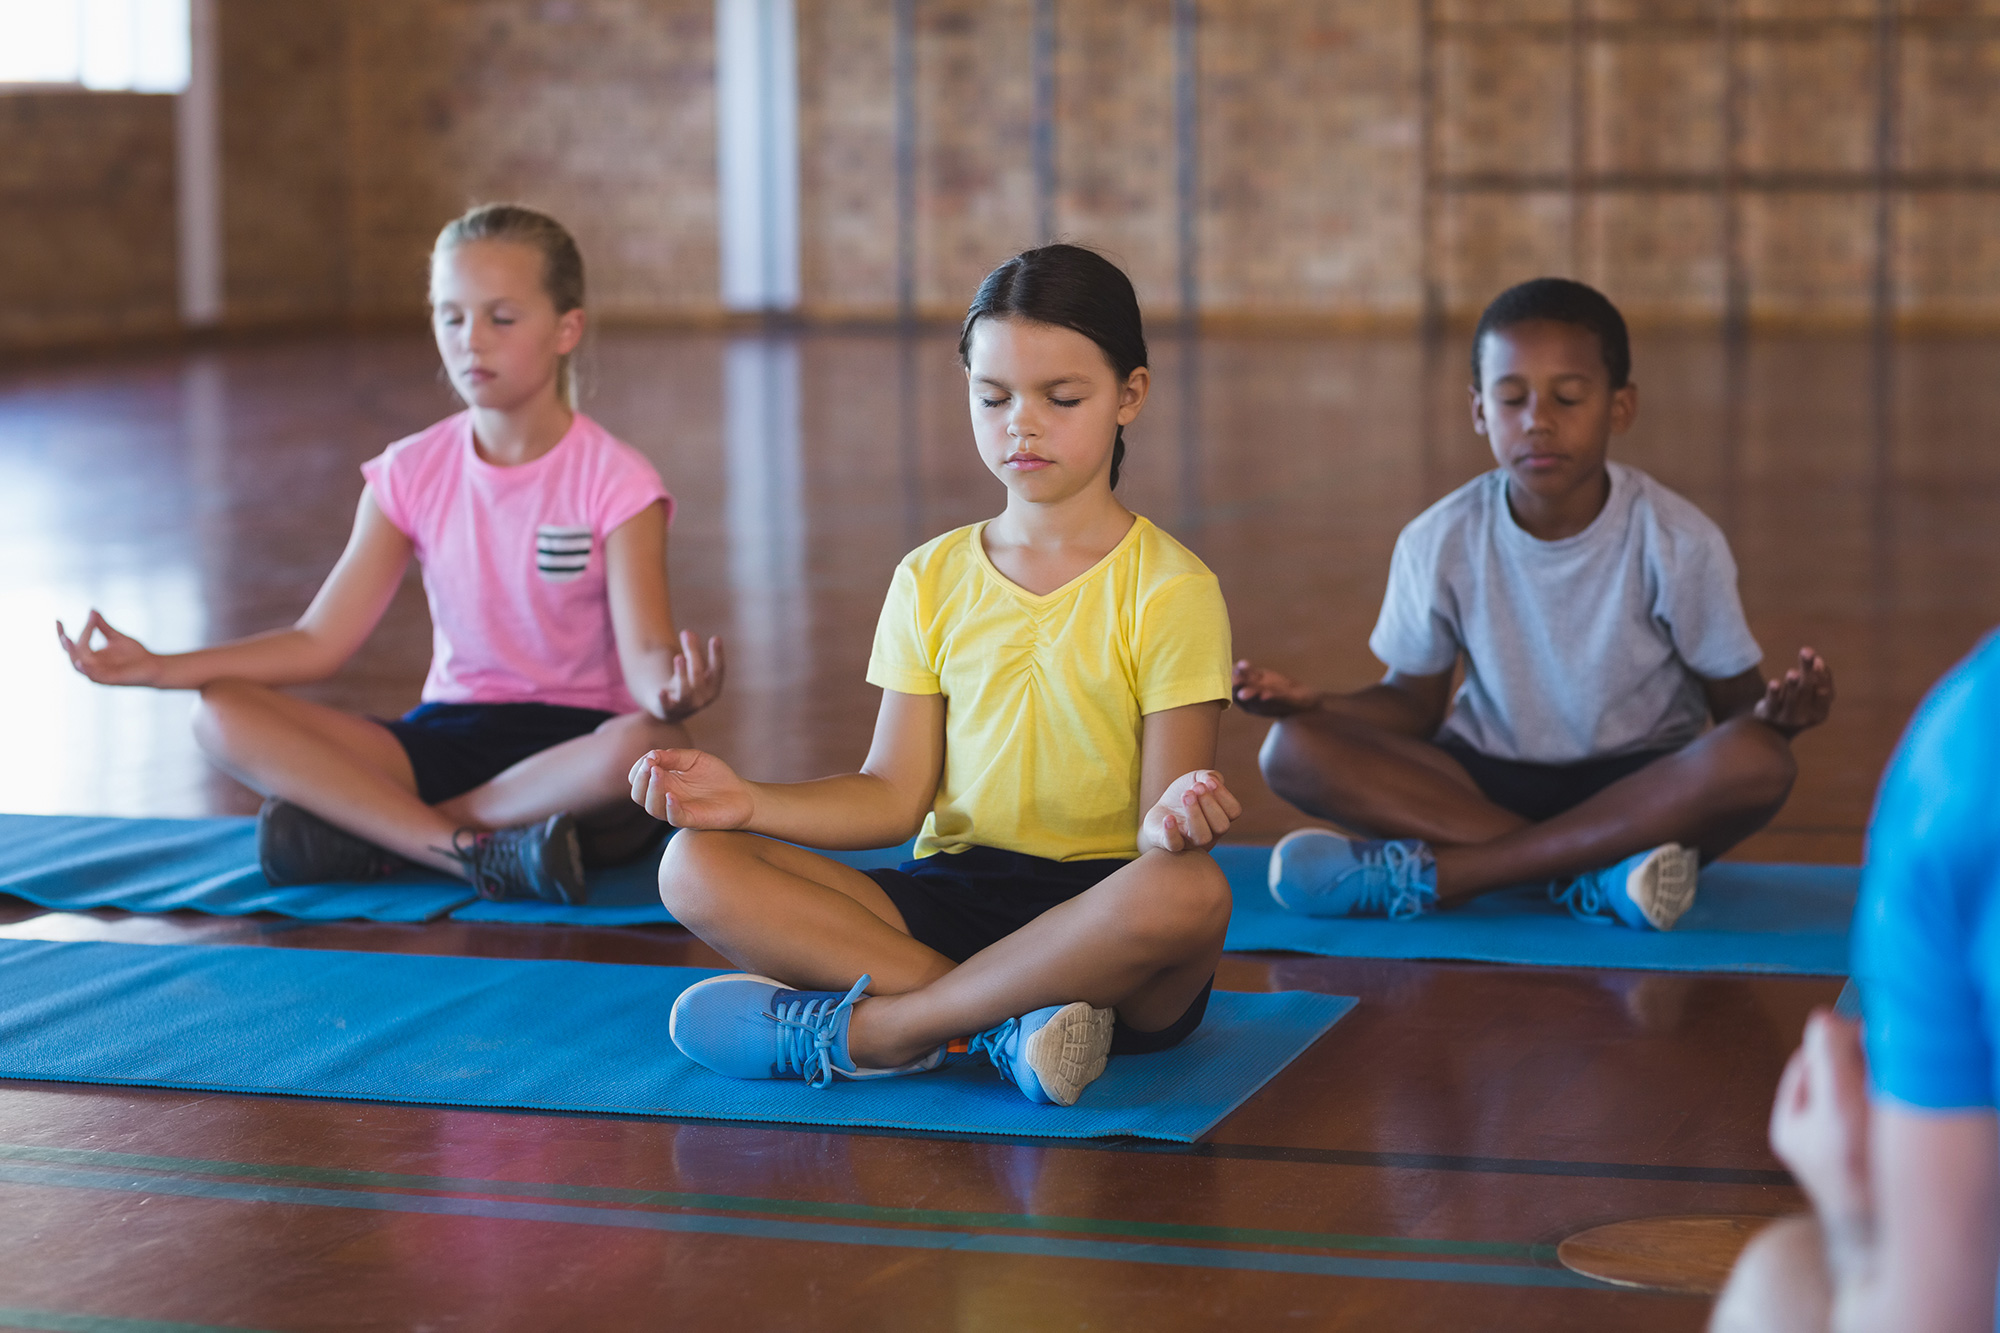 mindfulness-for-children-in-the-gym.jpg